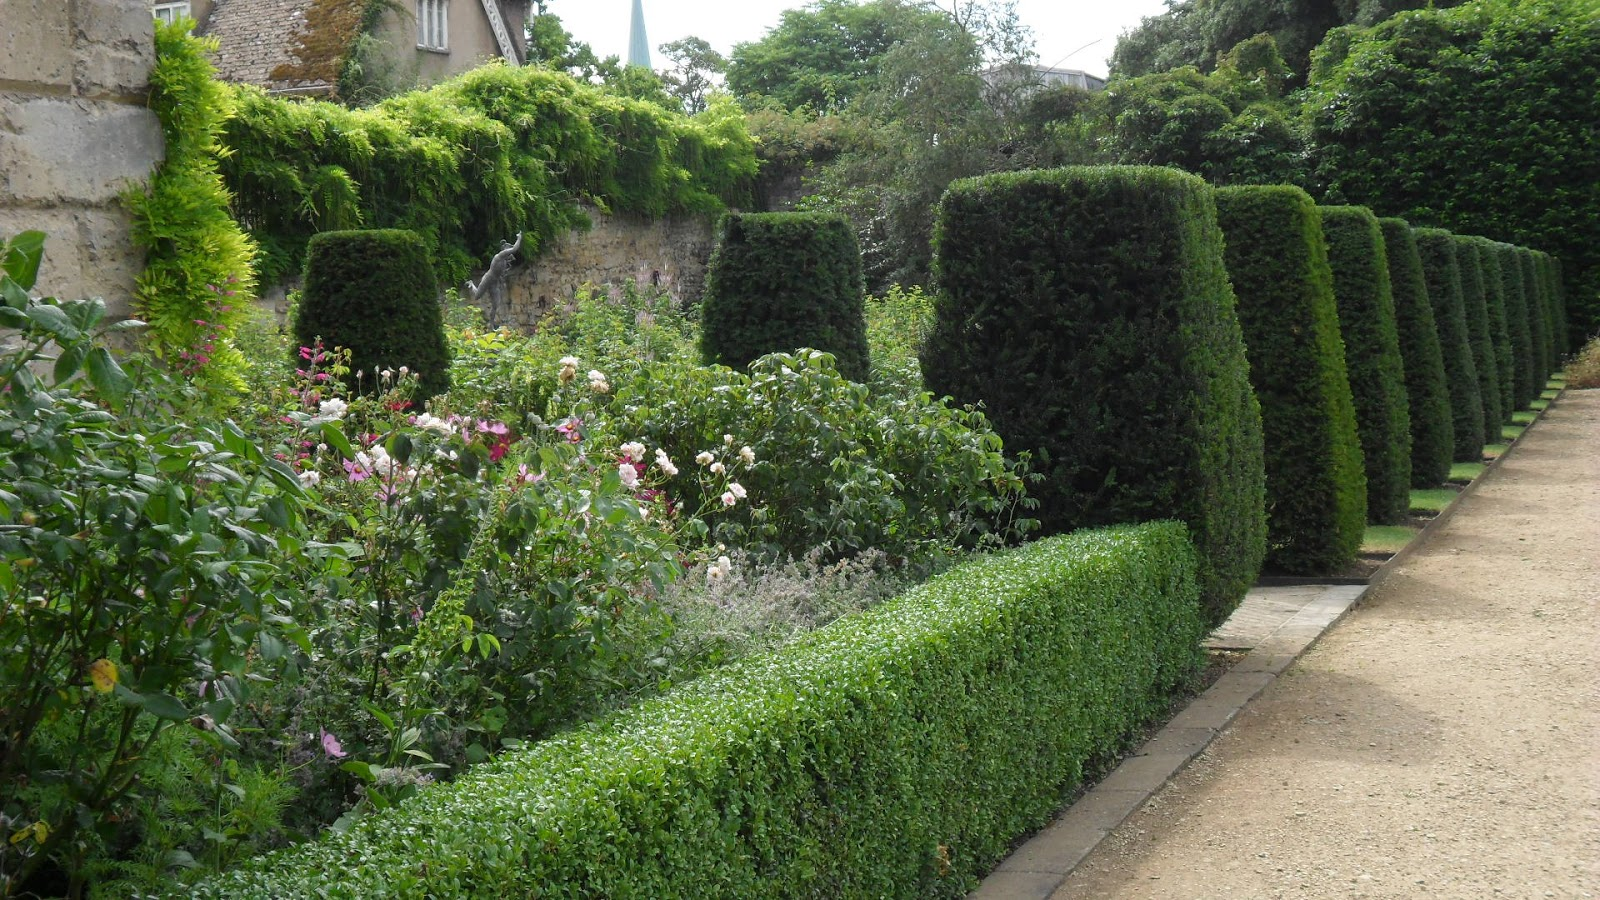 Hedge Bushes: Worcester College Gardeners 2009-2018: Yew Hedges, Yew